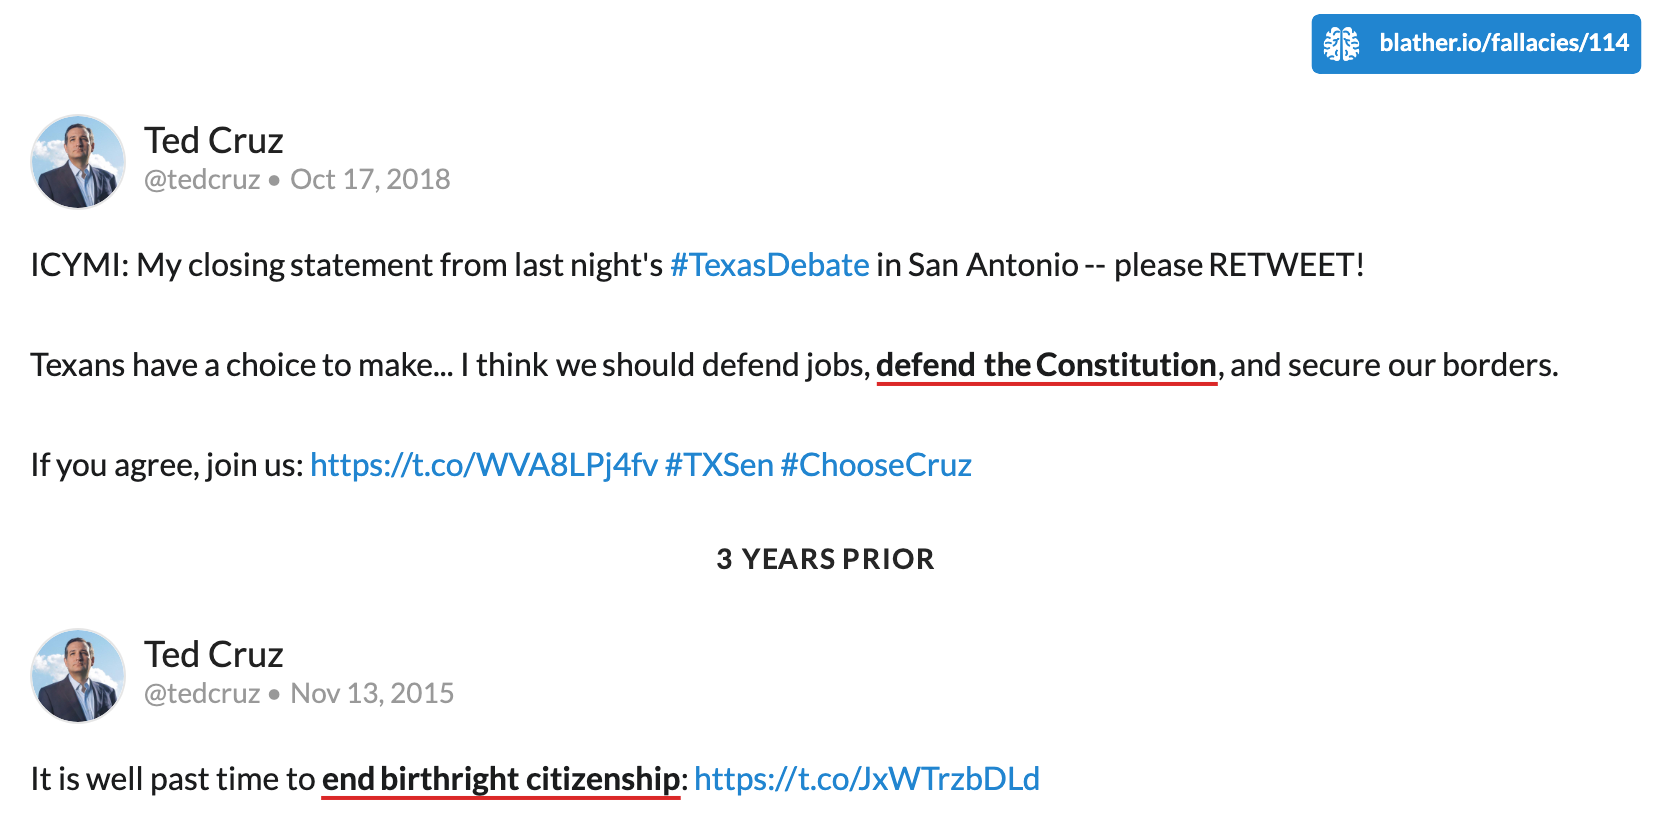 Doublethink by Ted Cruz